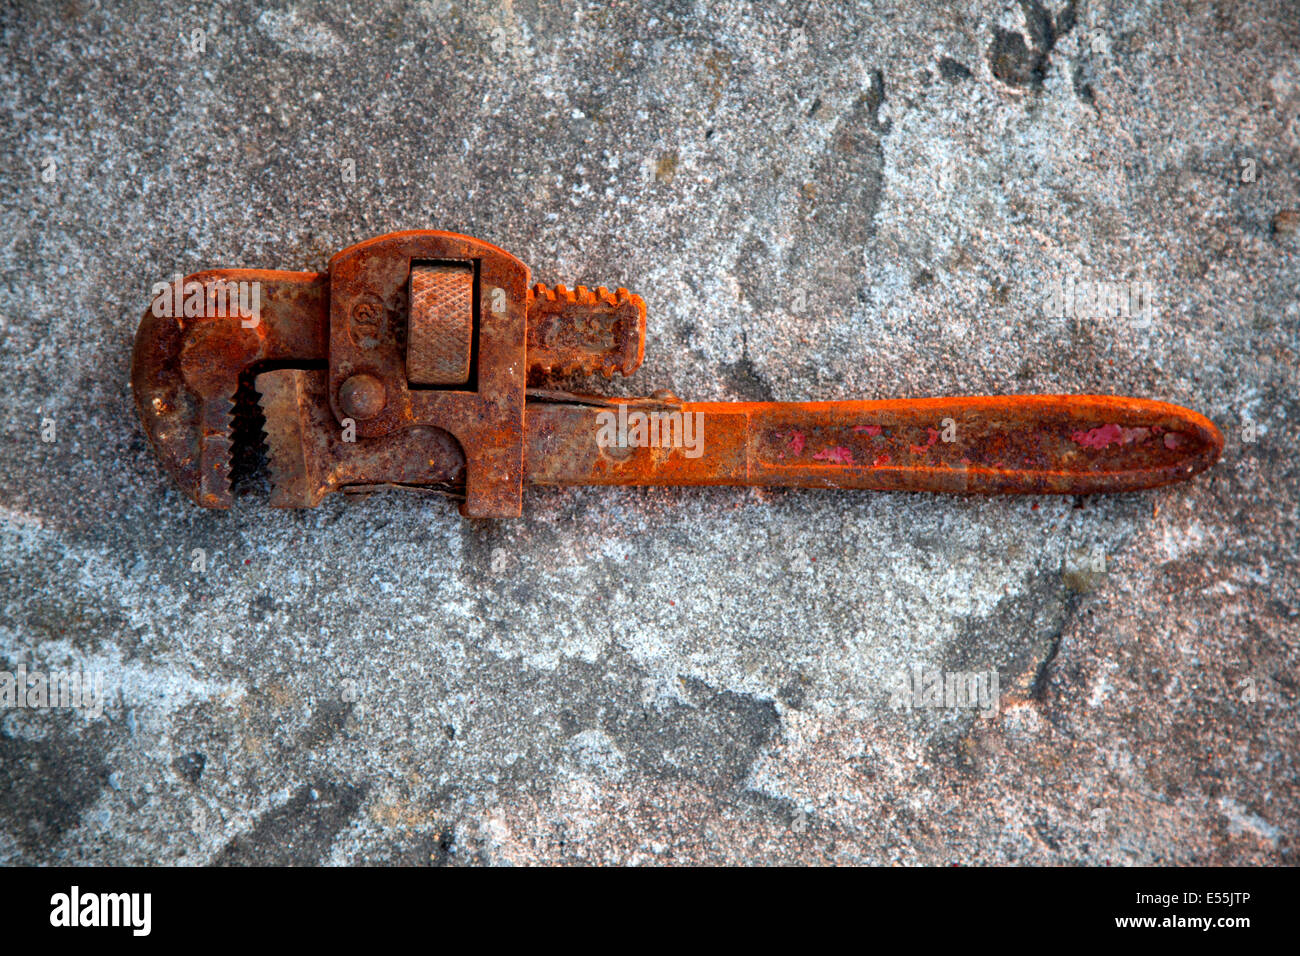 Thoroughly rusted forgotten pipe wrench. Zawady Poland - Stock Image